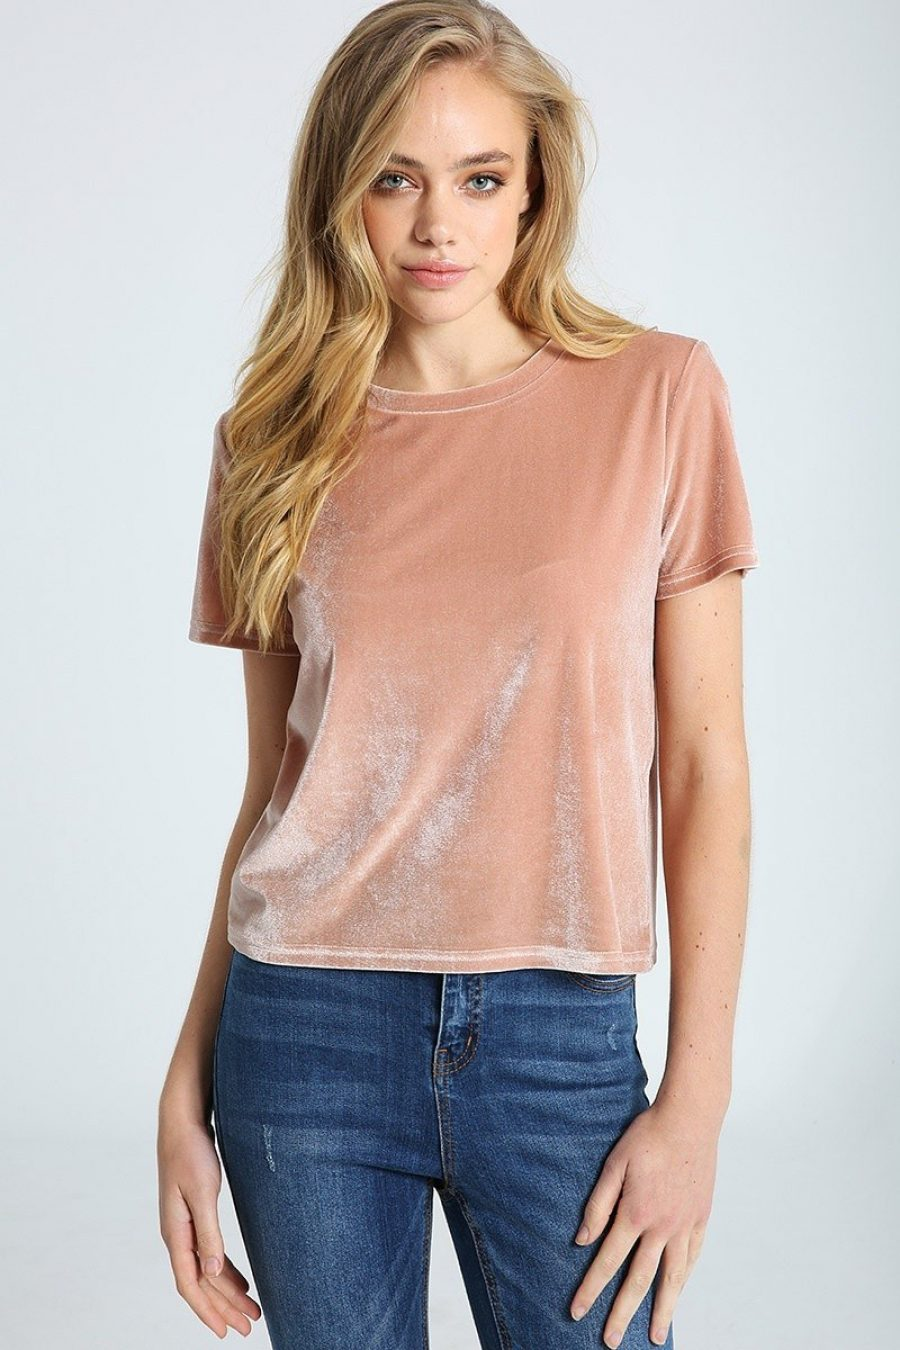 See Need Want Fashion Trend Velvet Tee